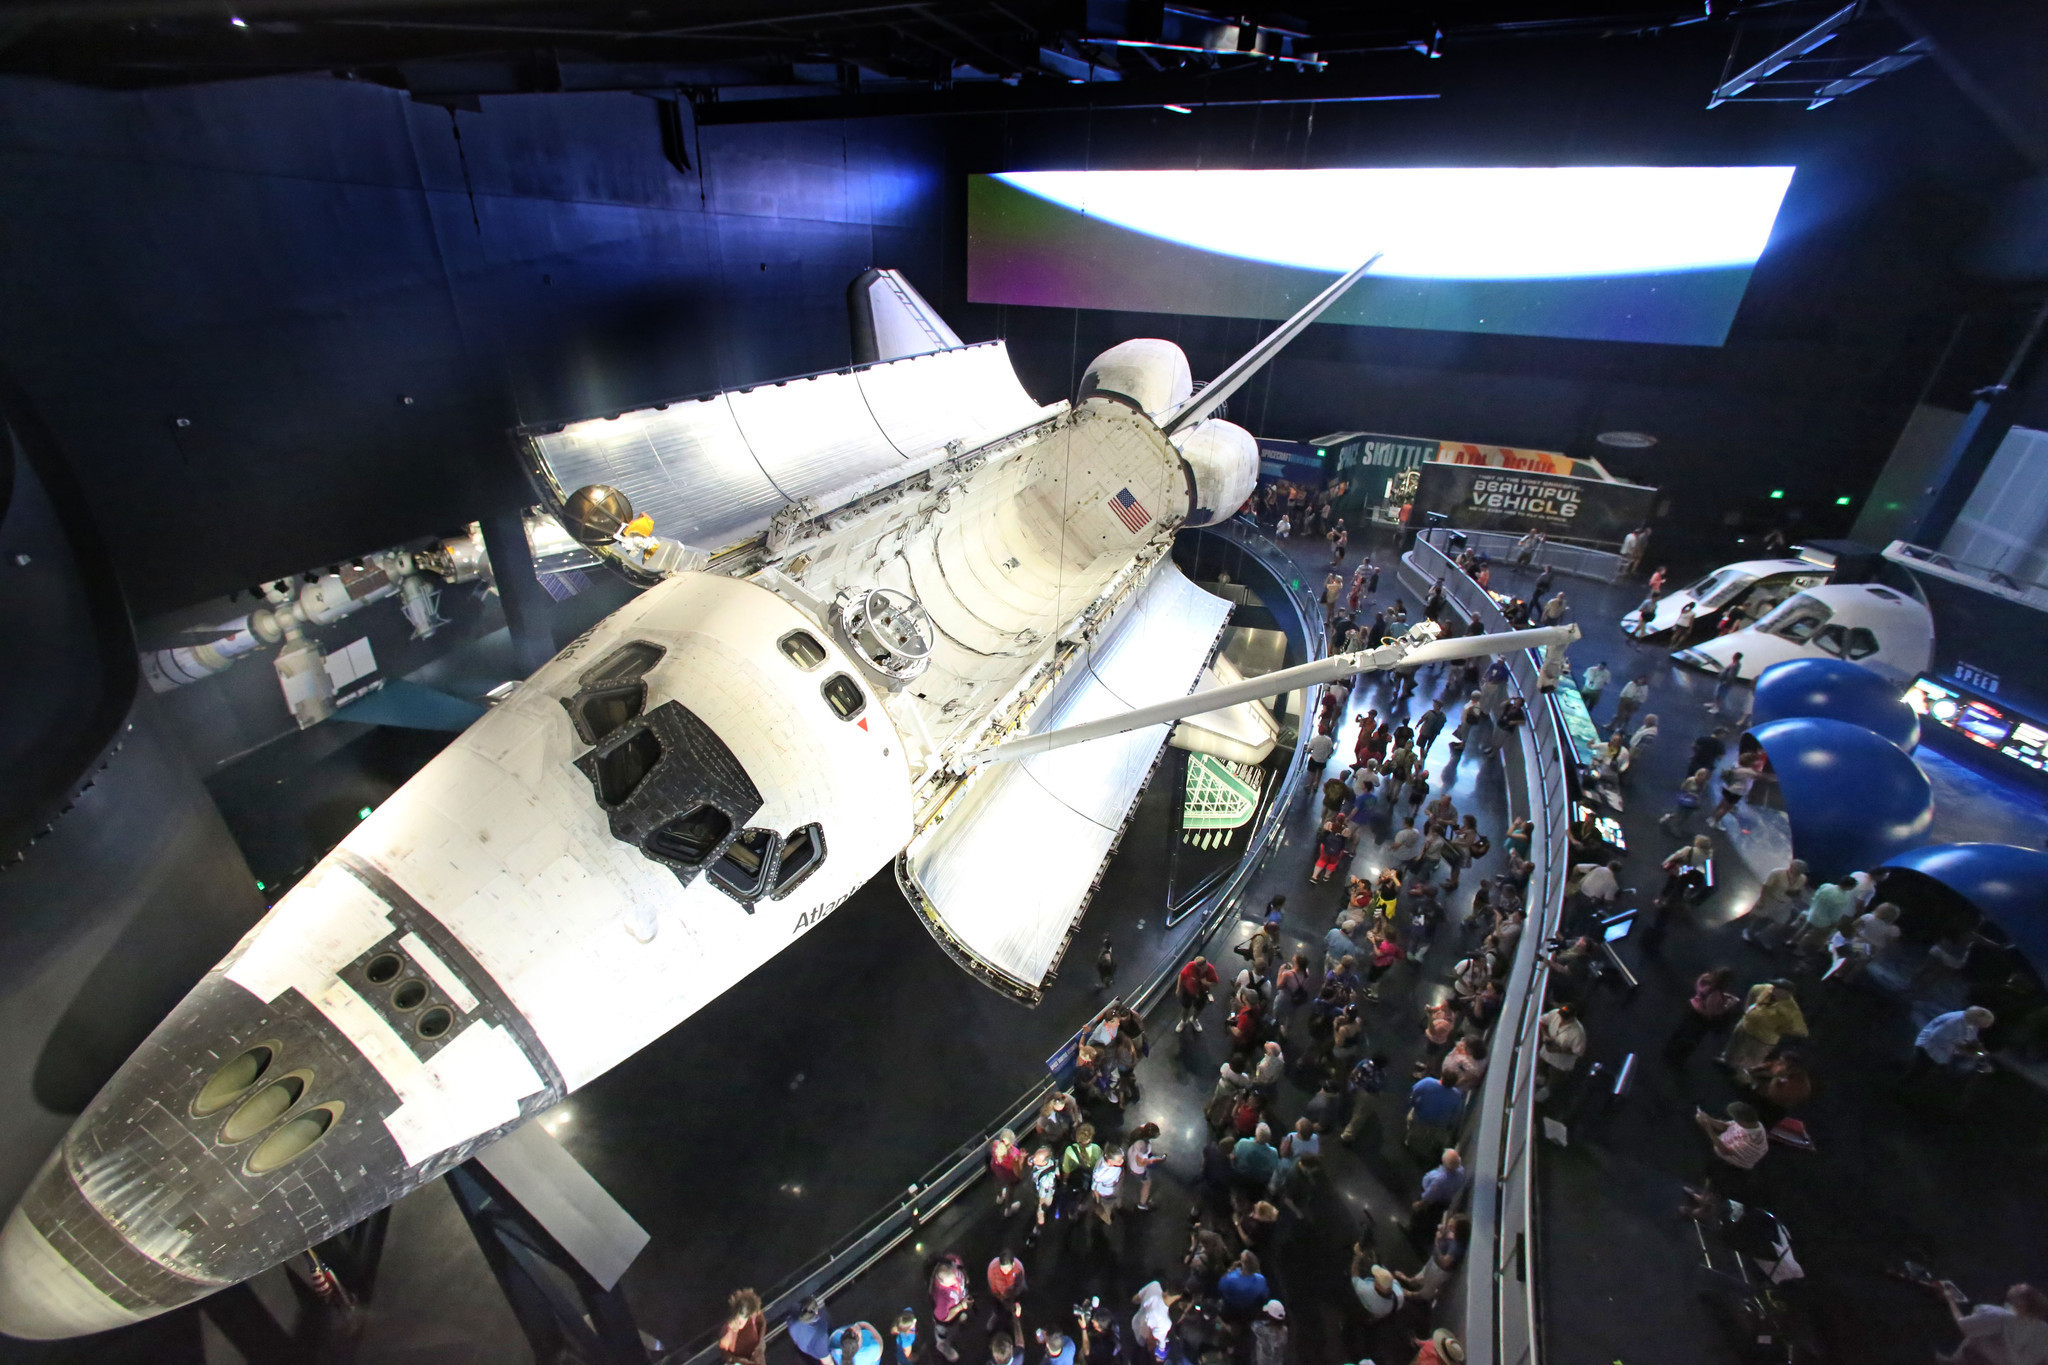 space shuttle atlantis orlando - photo #10